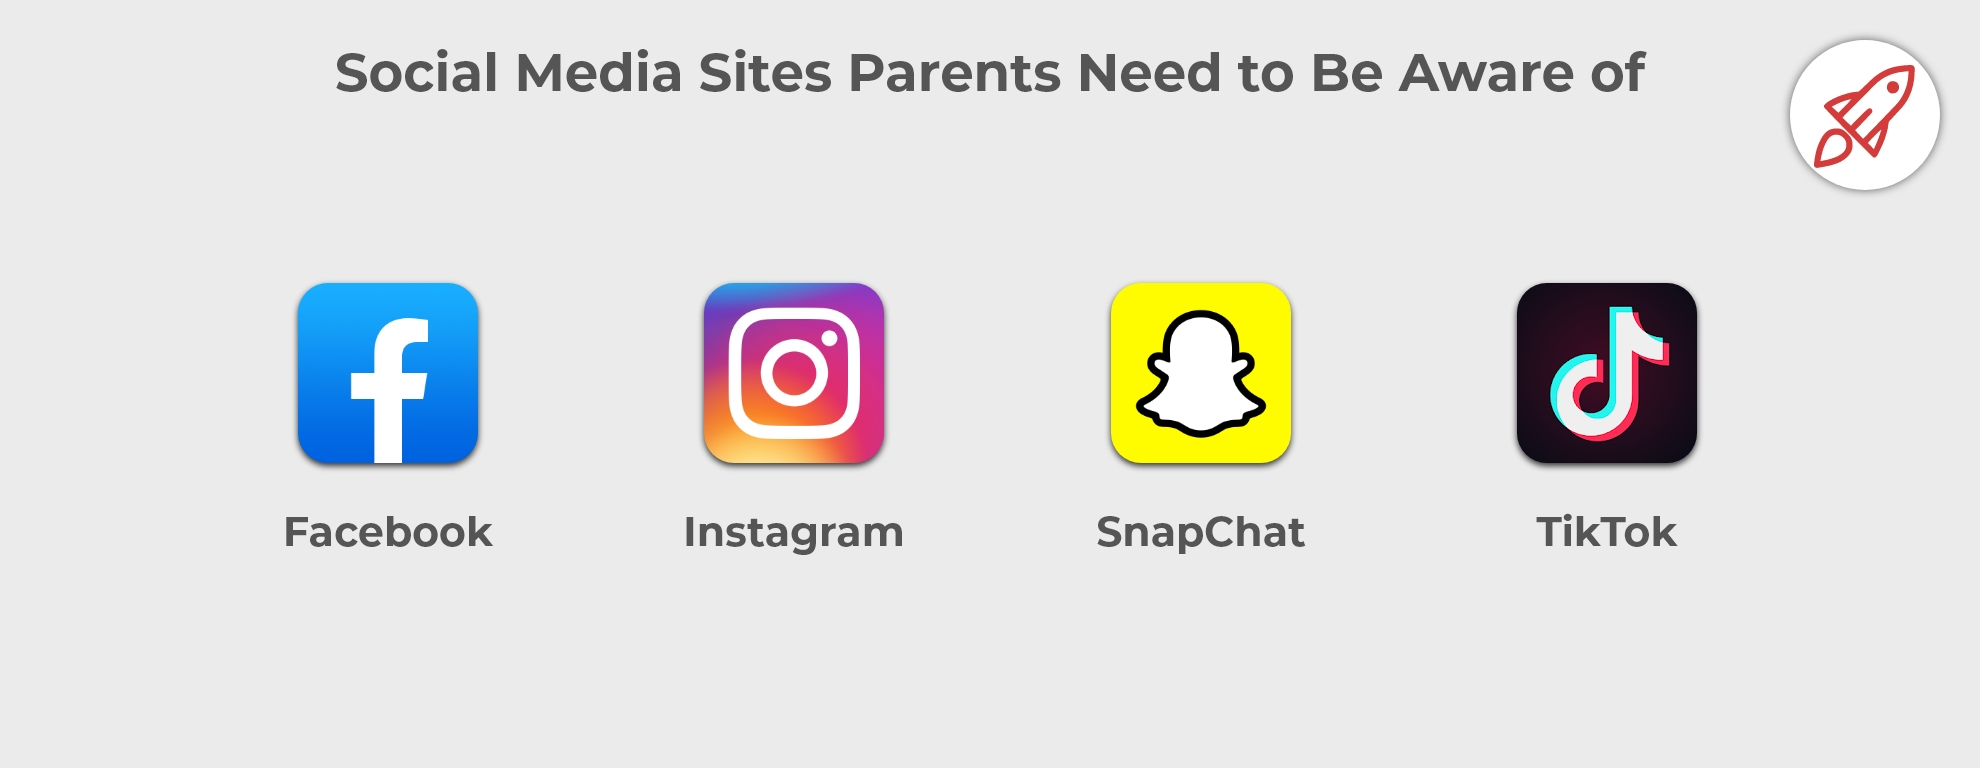 Social Media Parents Need To Be Aware Of